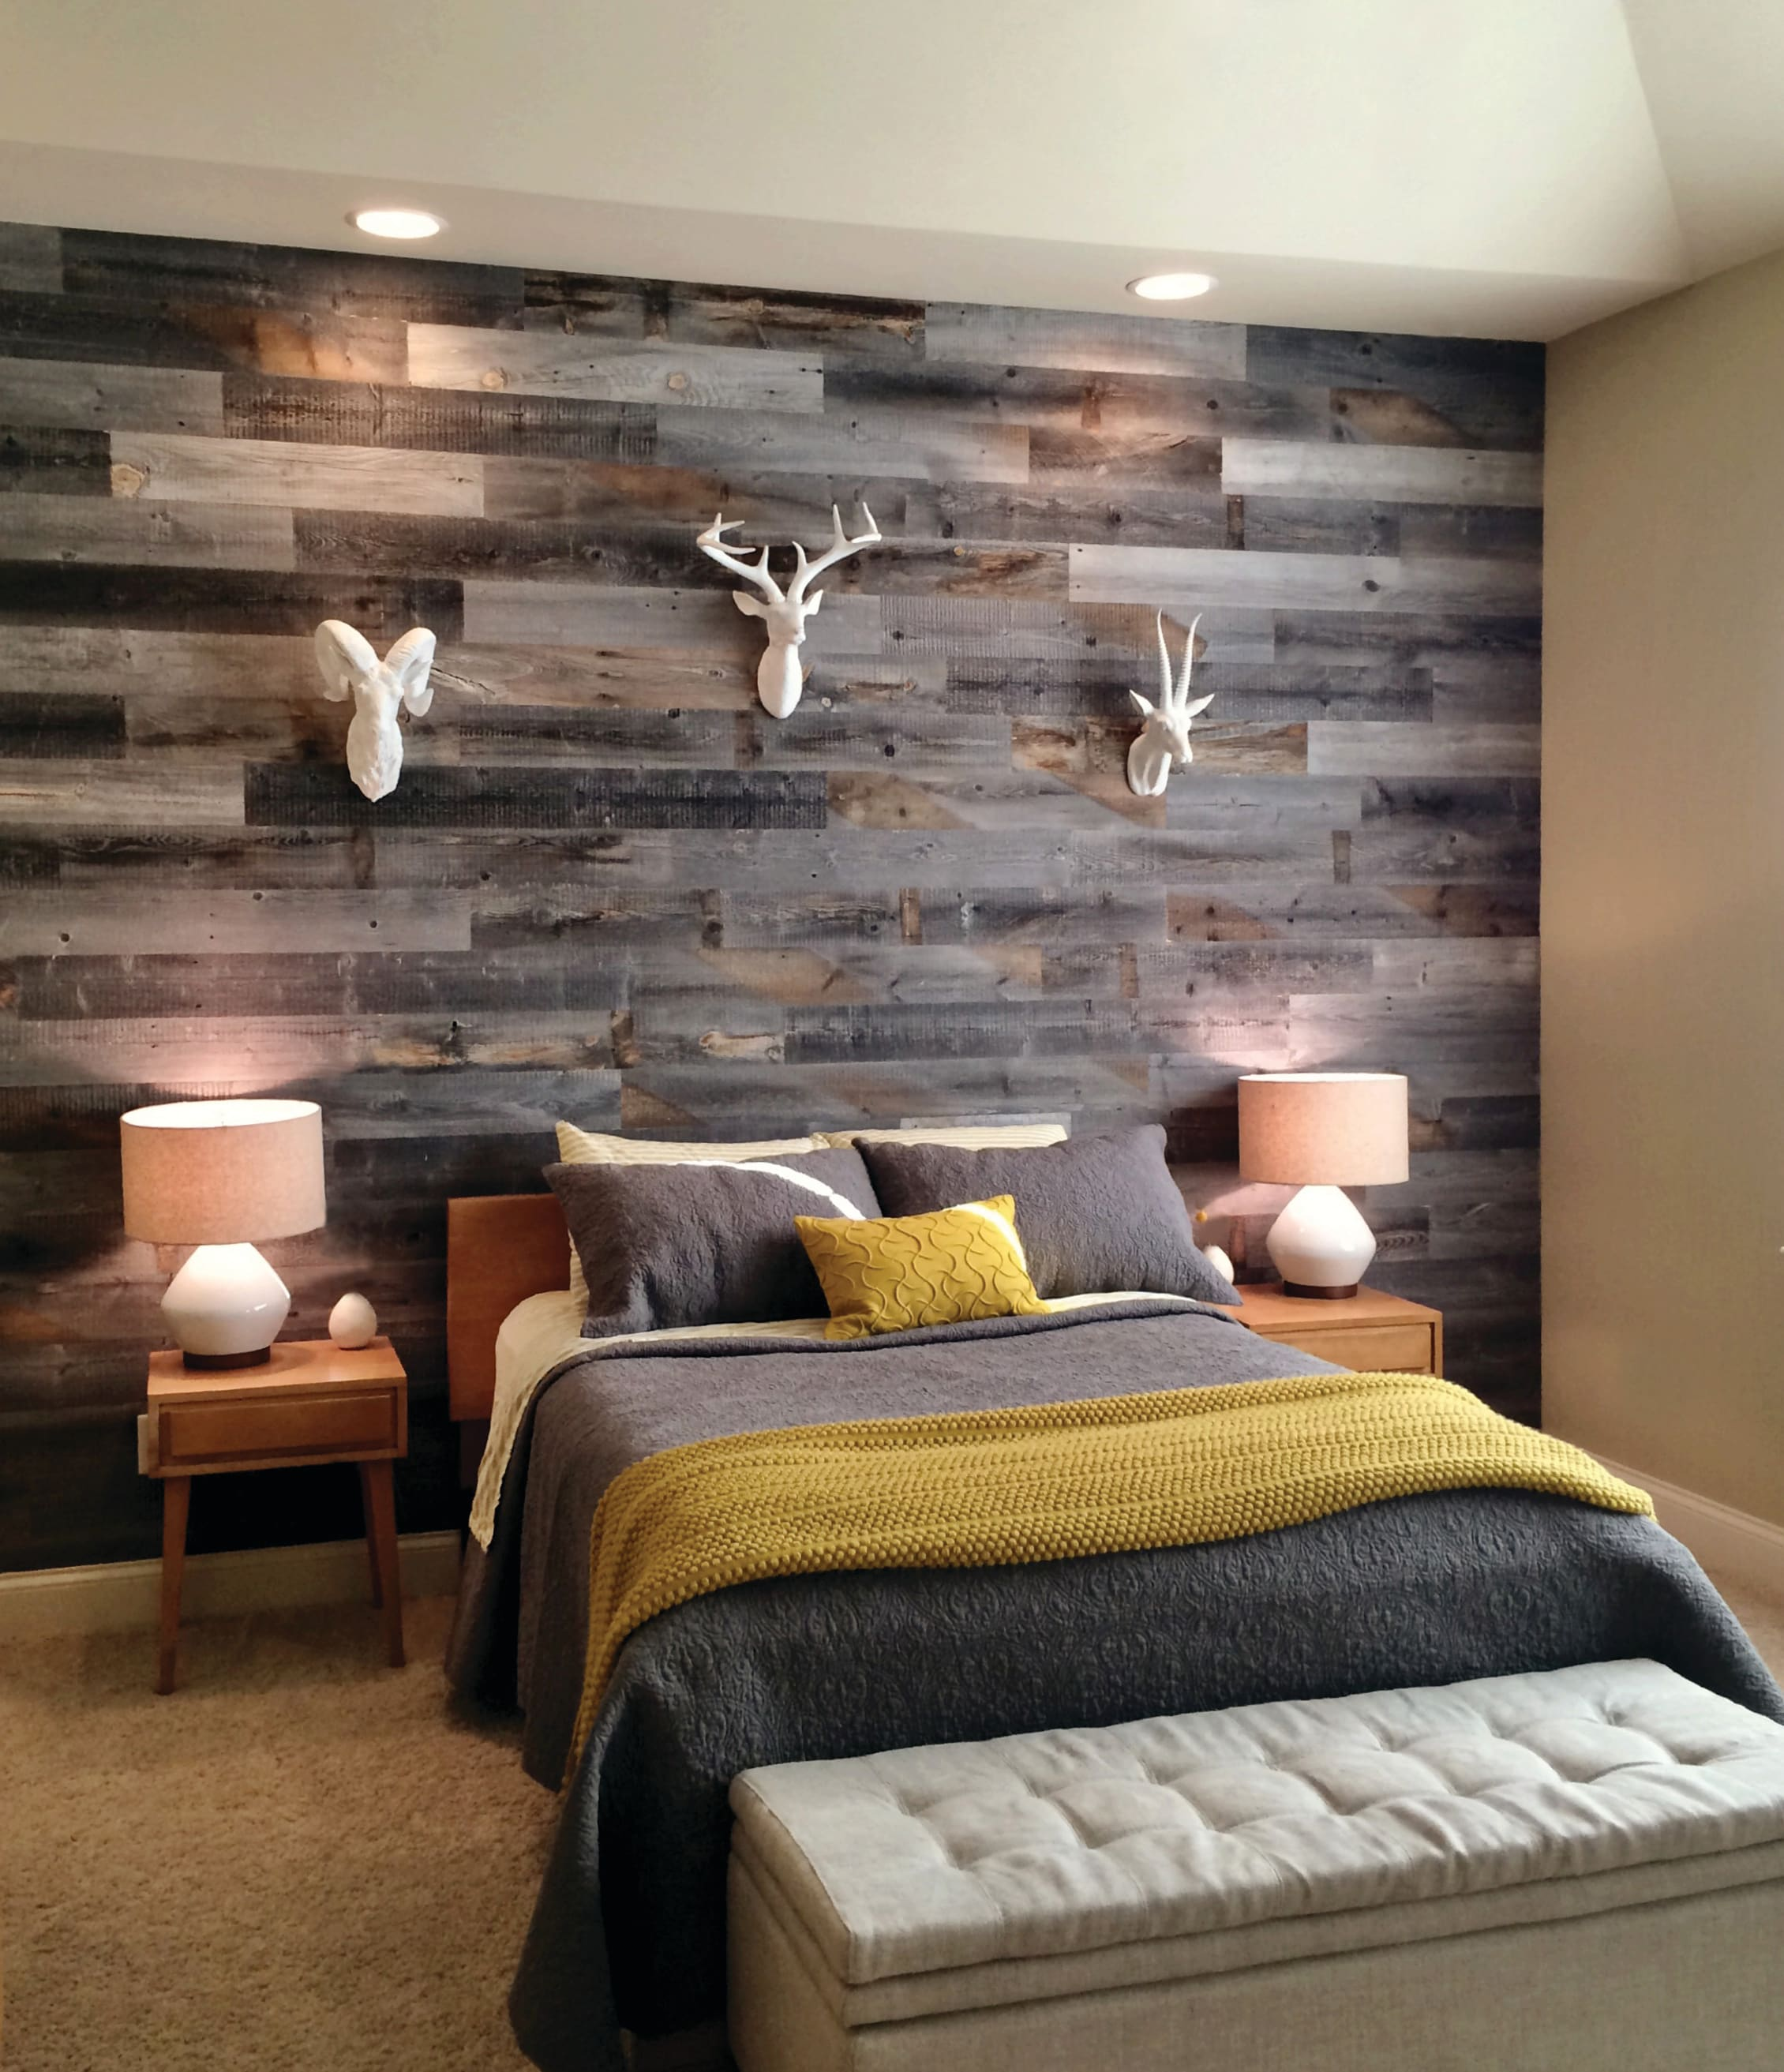 Modern rustic bedroom with a low bed in front of a reclaimed barnwood wood panel accent wall made with Stikwood.